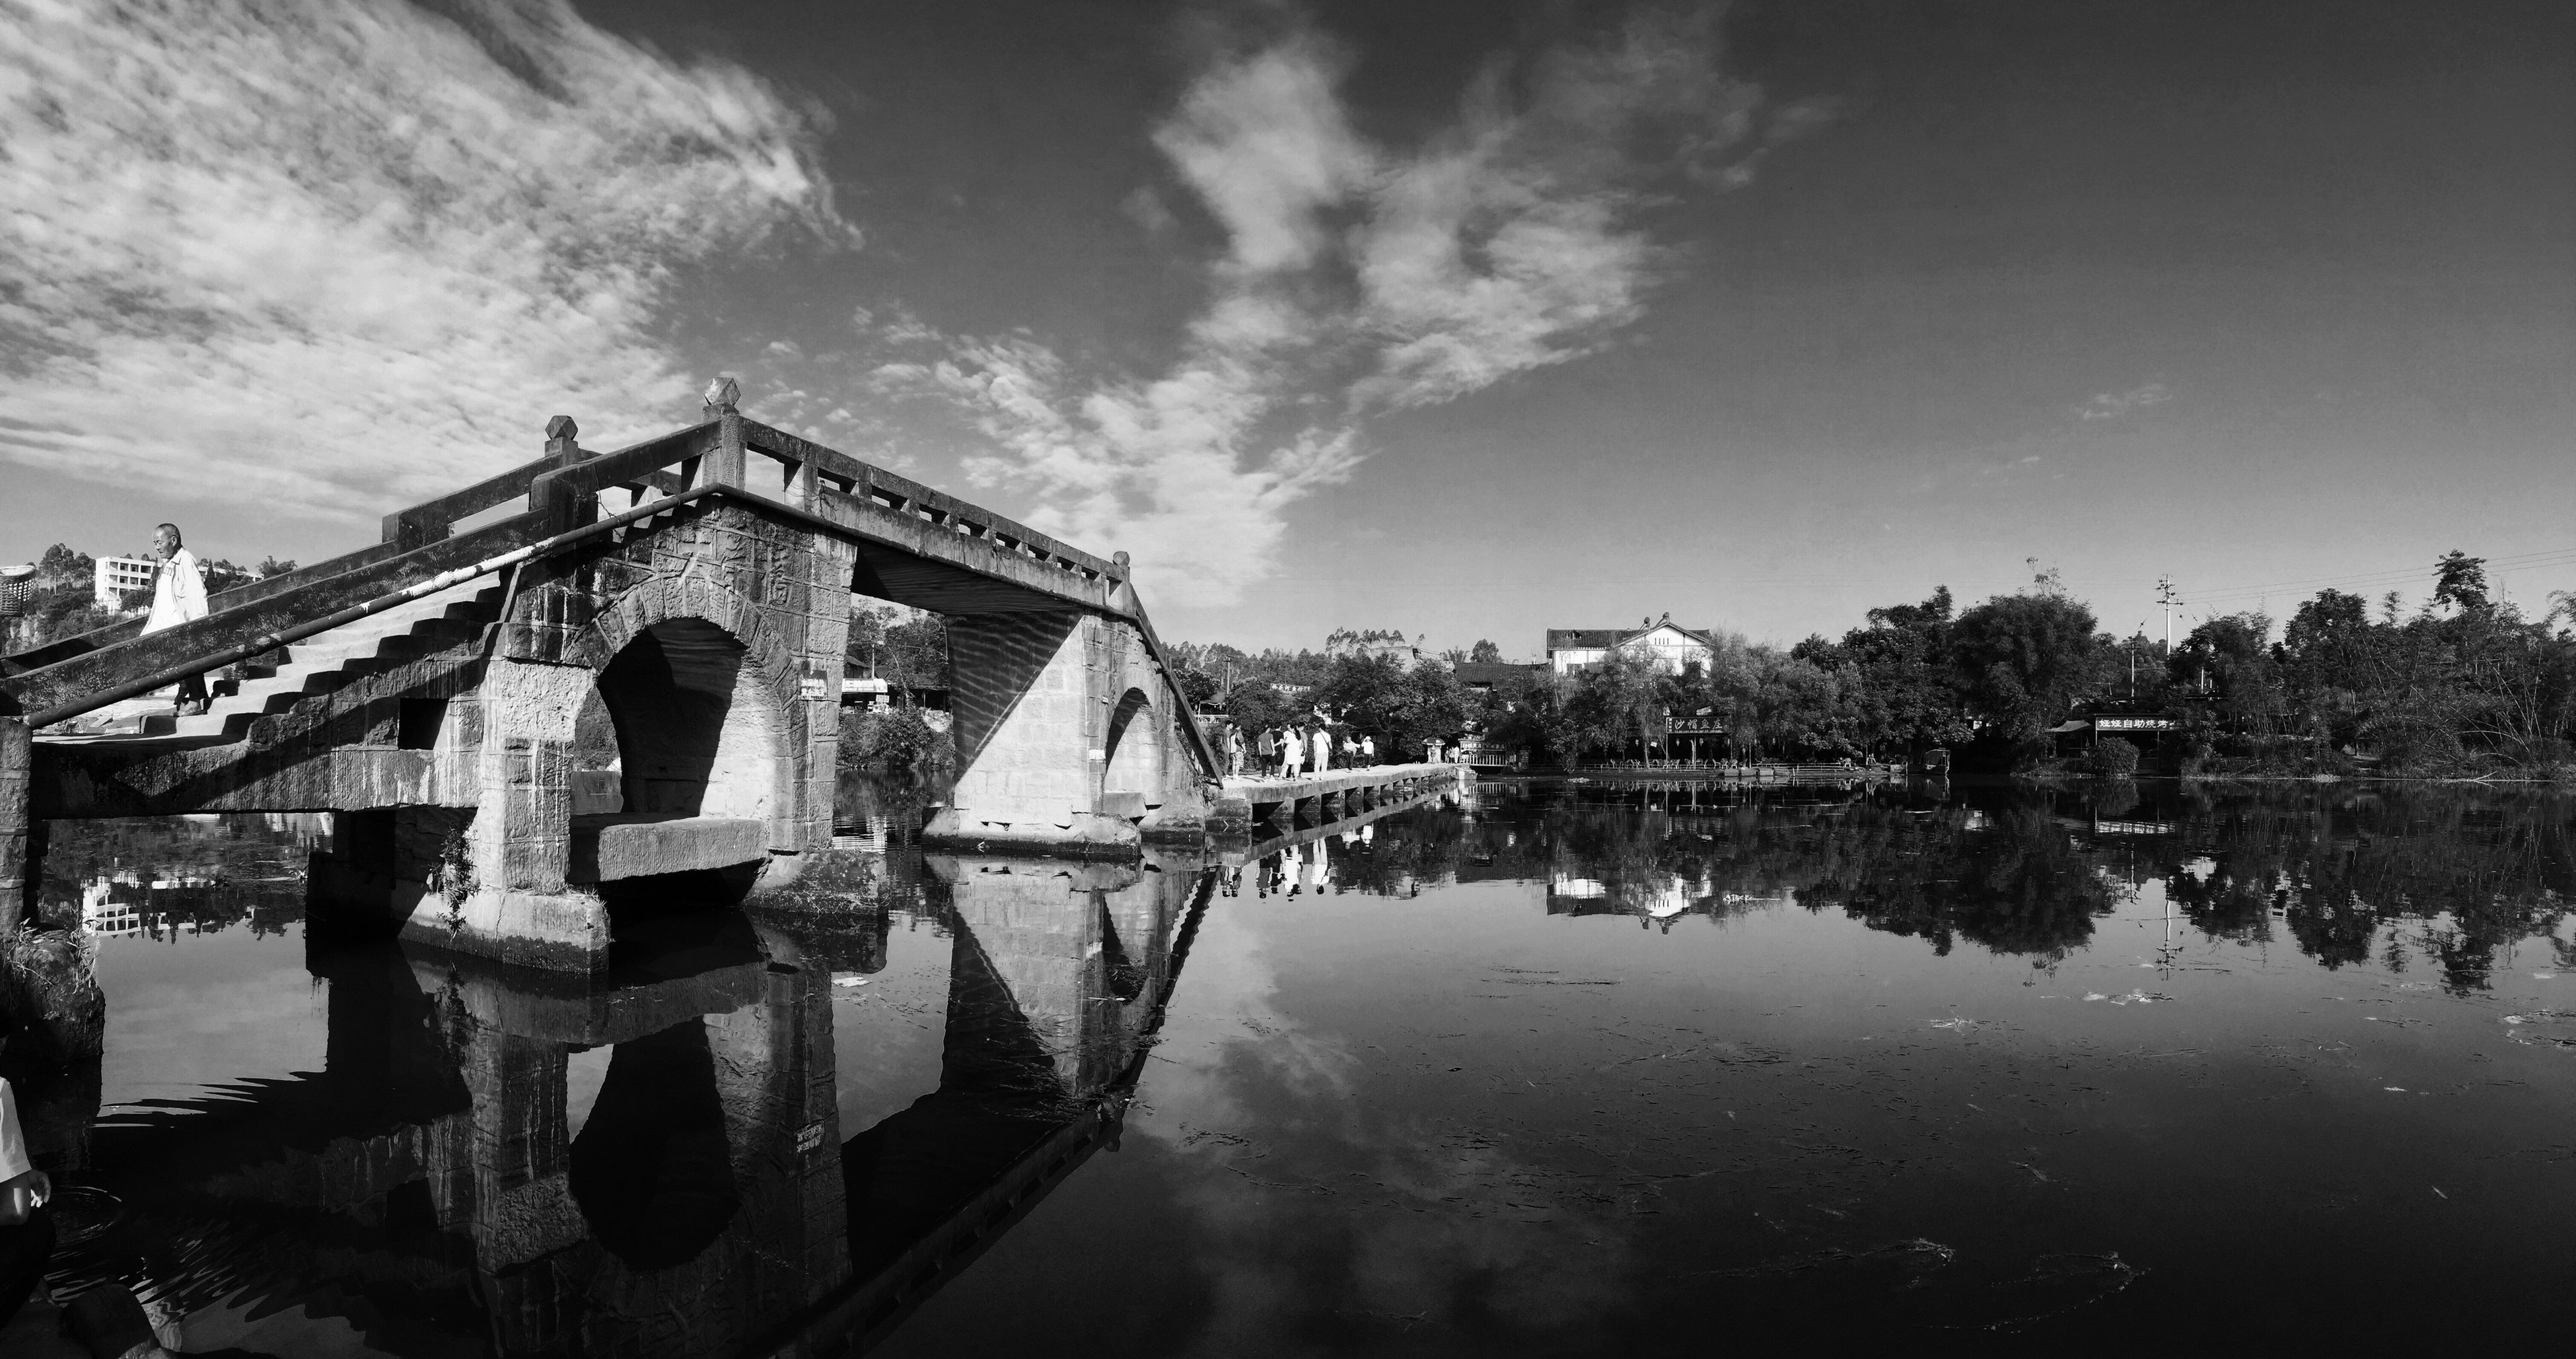 architecture, built structure, building exterior, water, reflection, sky, waterfront, cloud - sky, river, cloud, connection, standing water, lake, bridge - man made structure, day, outdoors, canal, building, house, residential structure